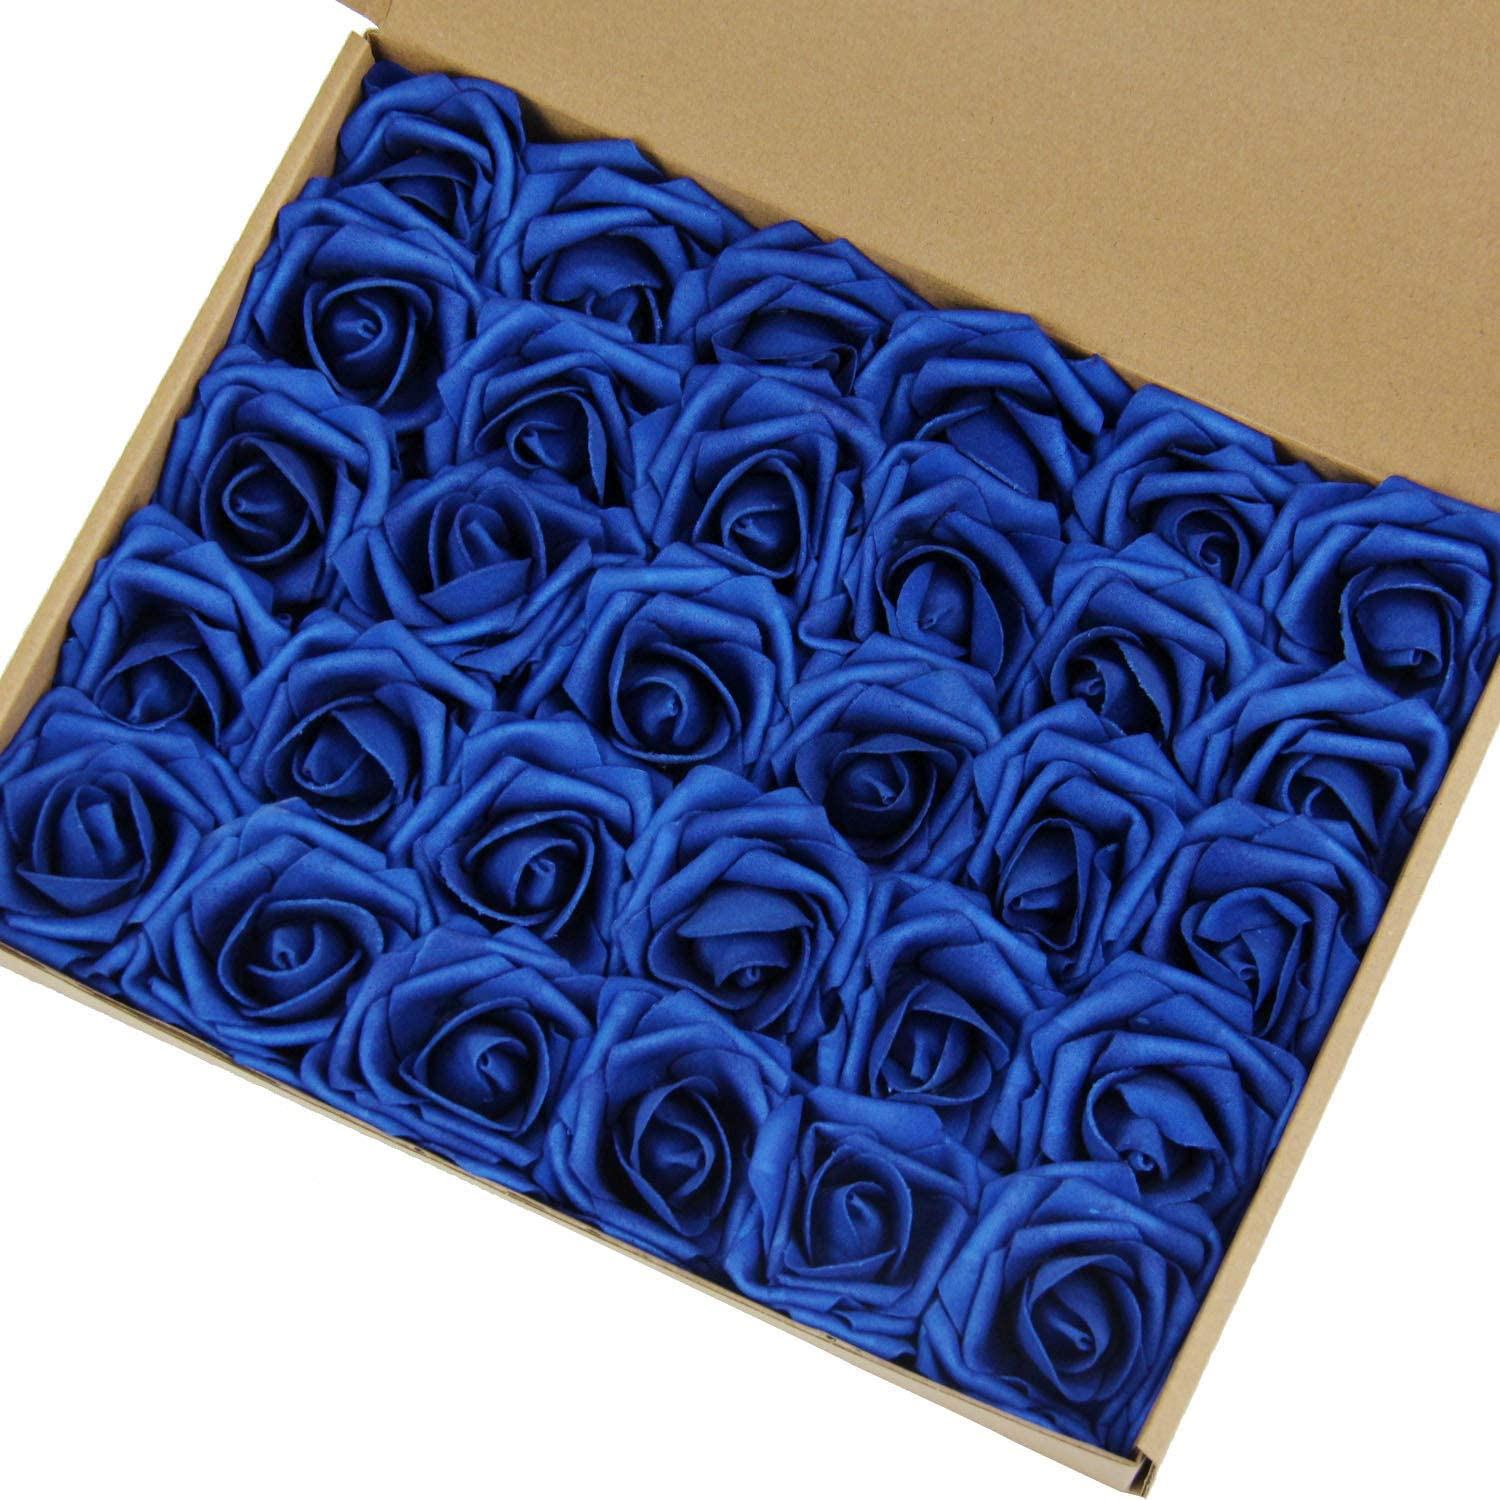 MACTING Artificial Flower Rose, 30pcs Real Touch Artificial Roses for DIY Bouquets Wedding Party Baby Shower Home Decor(Darker Royal Blue)